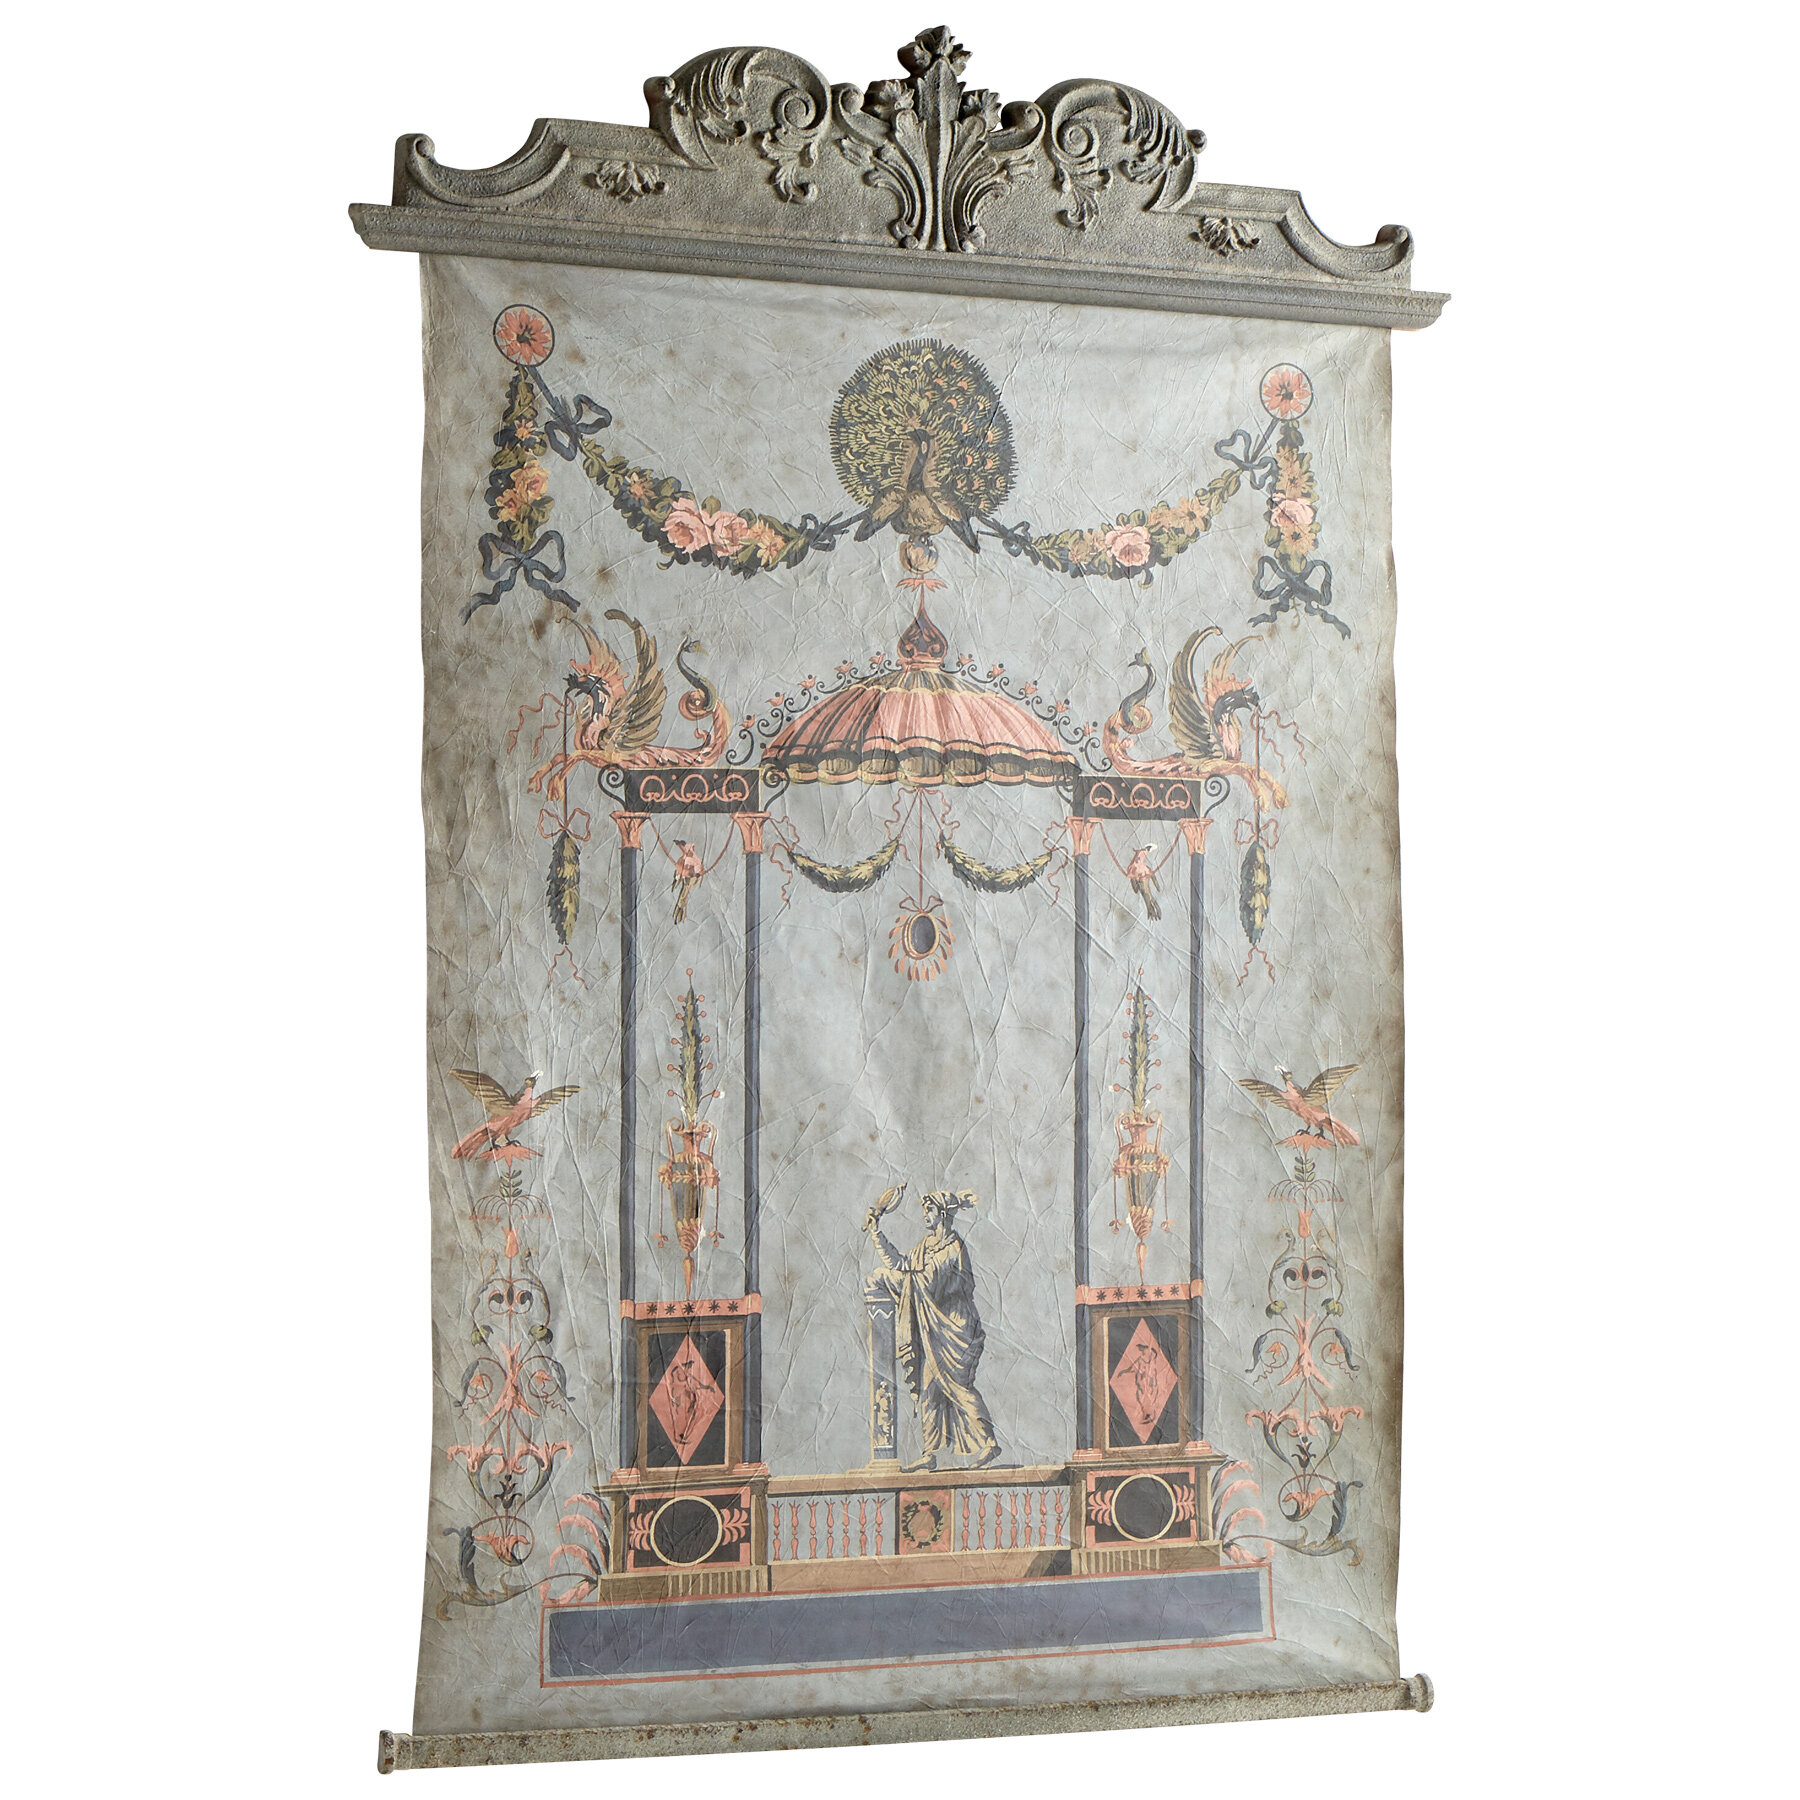 Blended Fabric Ethereal Days Chinoiserie Wall Hanging With Rod Intended For Most Up To Date Blended Fabric Wall Hangings With Rod Included (View 7 of 20)